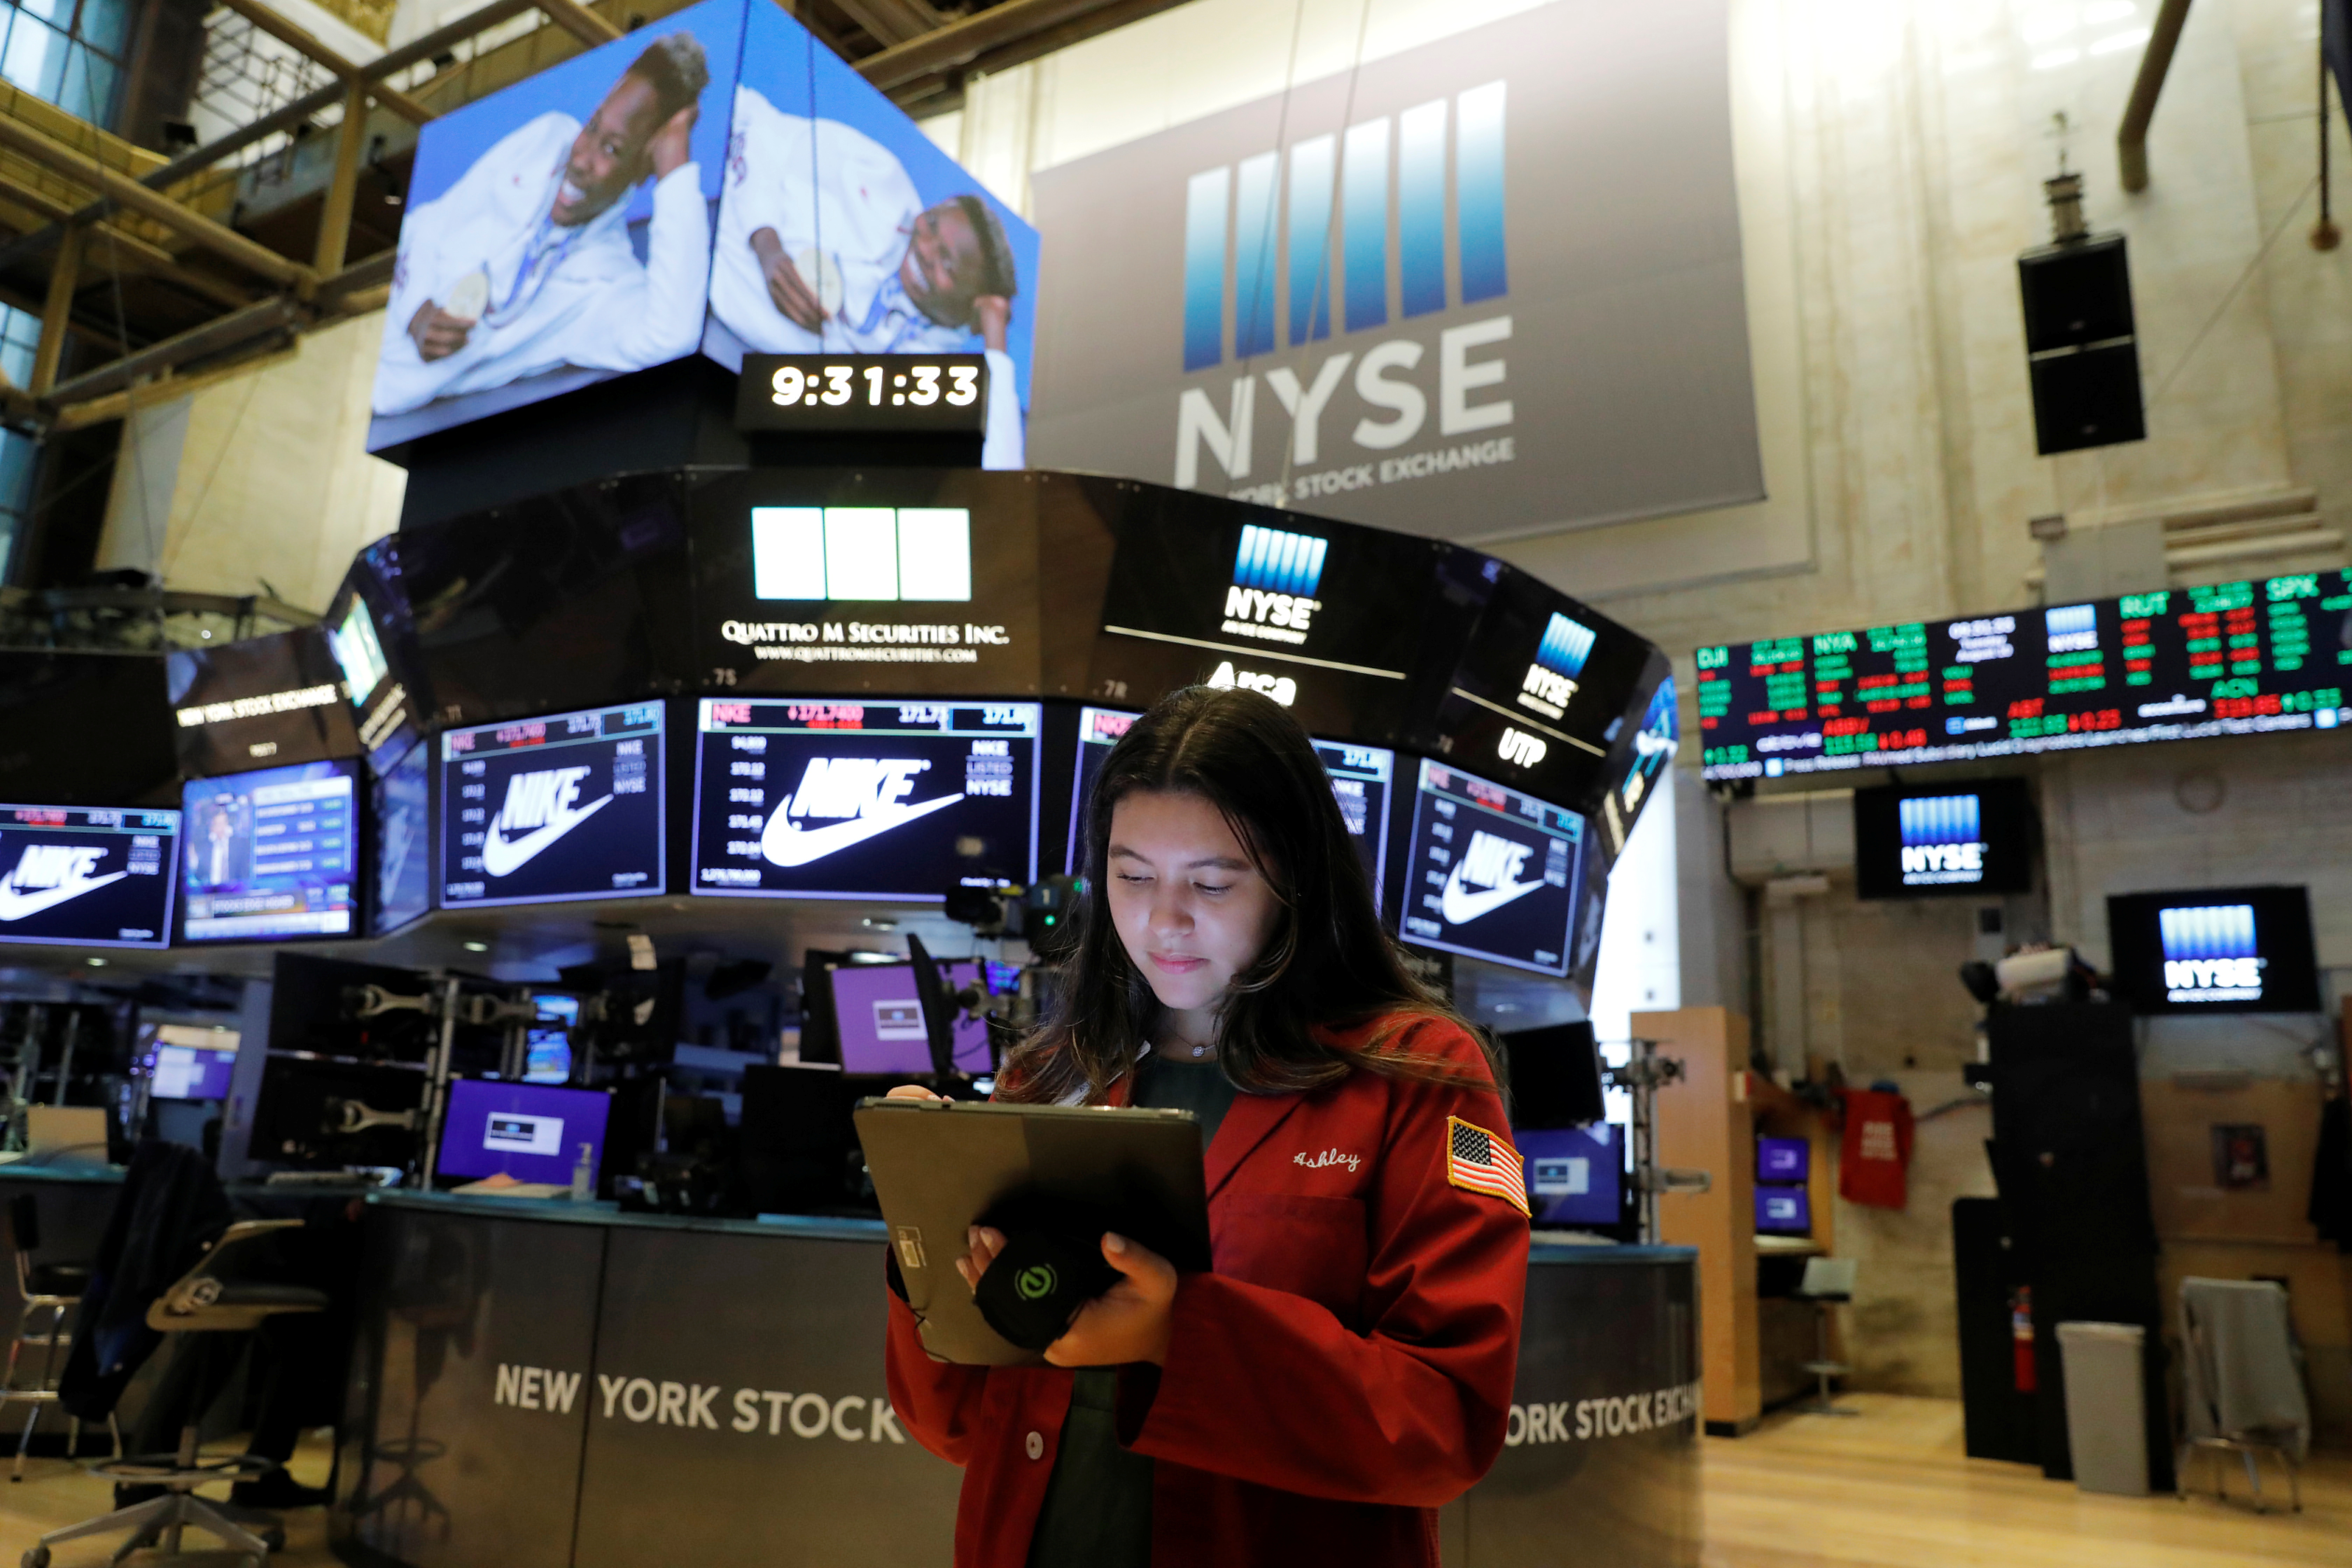 A trader works on the trading floor at the New York Stock Exchange (NYSE) in Manhattan, New York City, U.S., August 10, 2021. REUTERS/Andrew Kelly